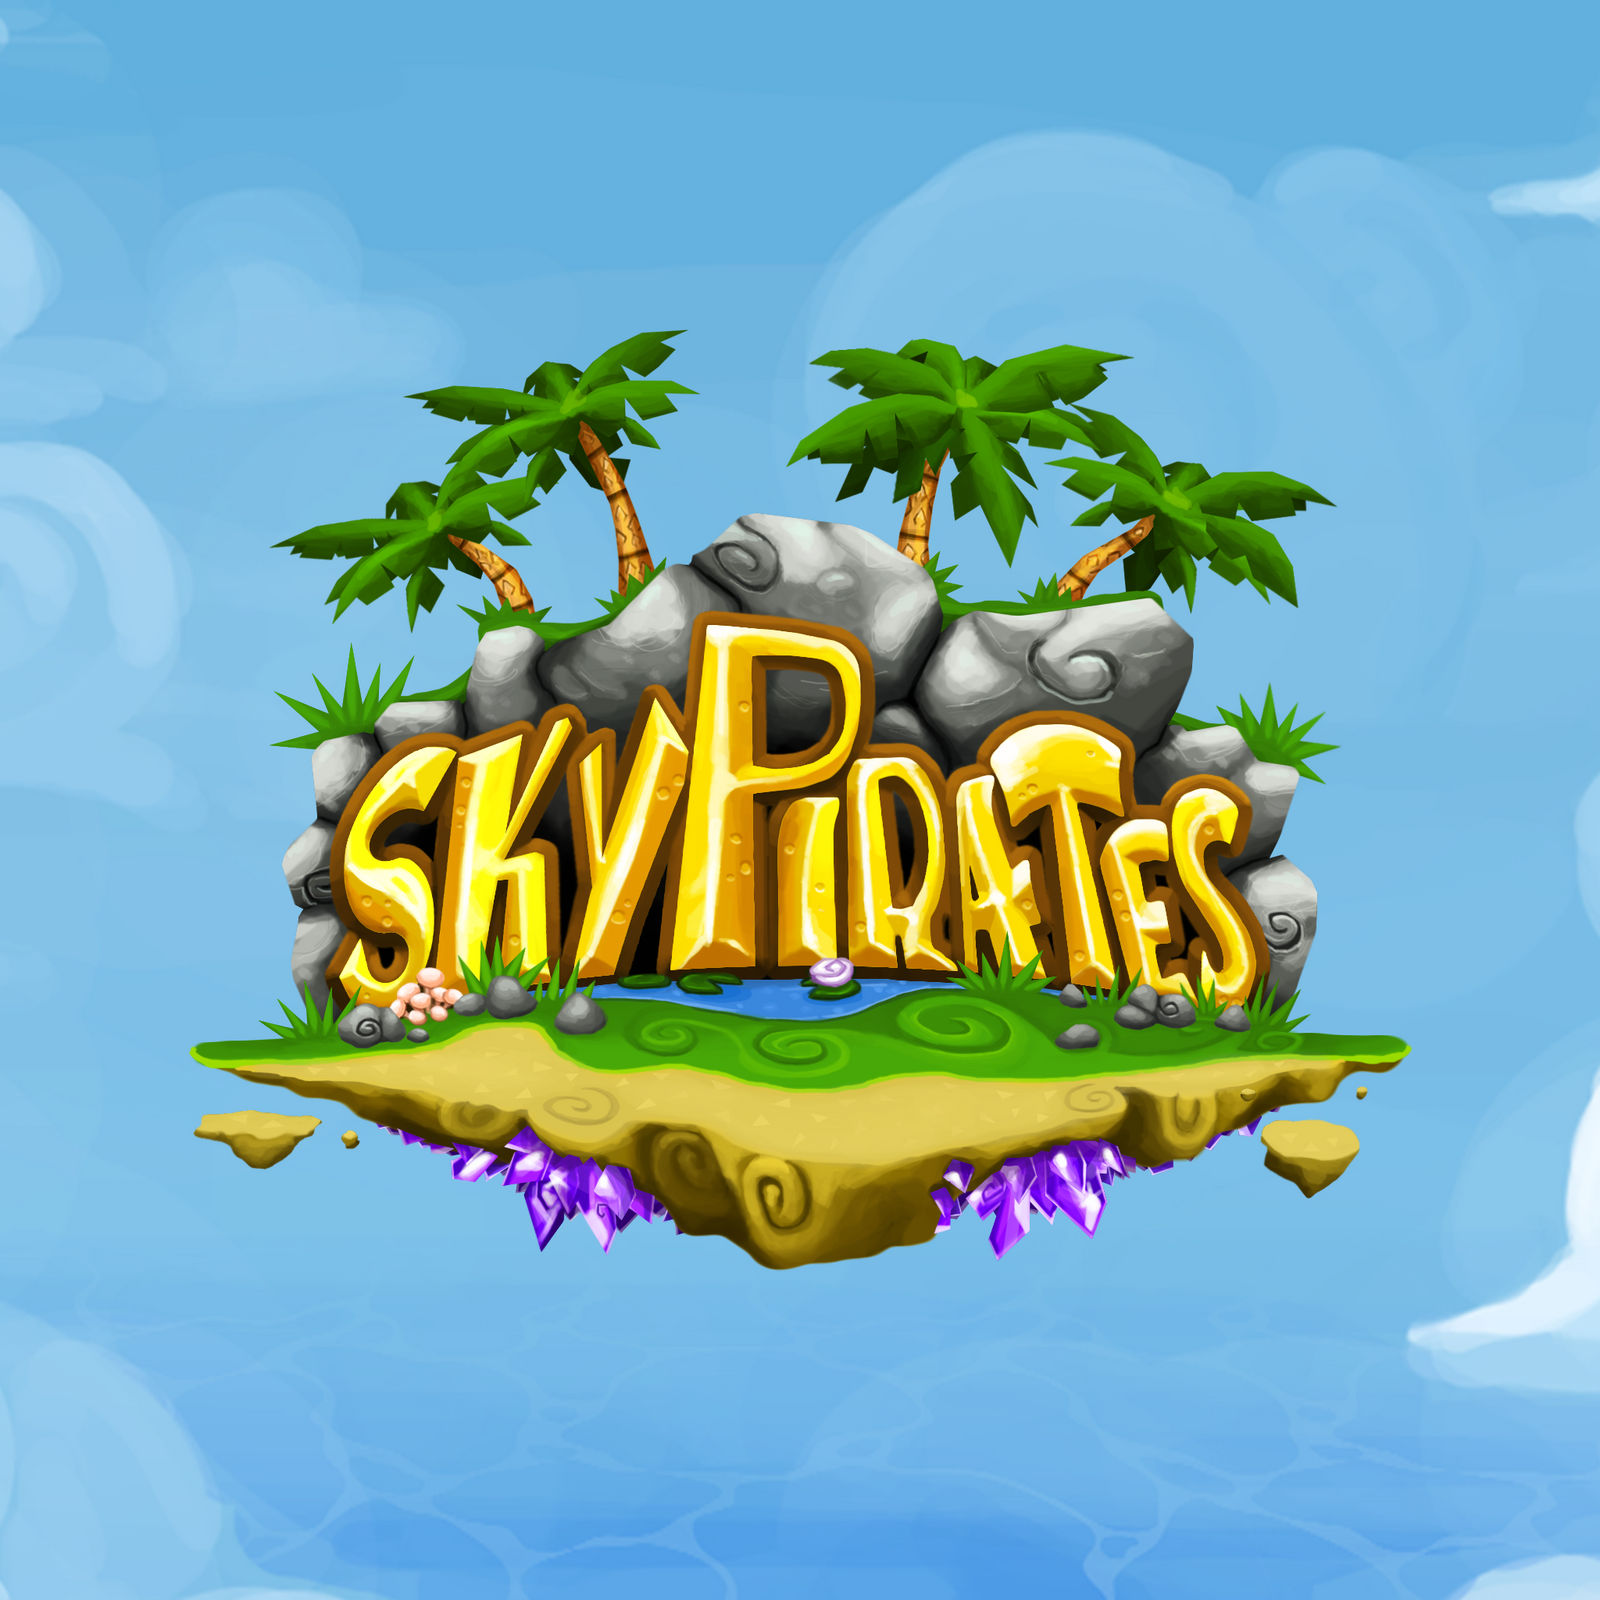 Sky Pirates Logo by KevinMassey